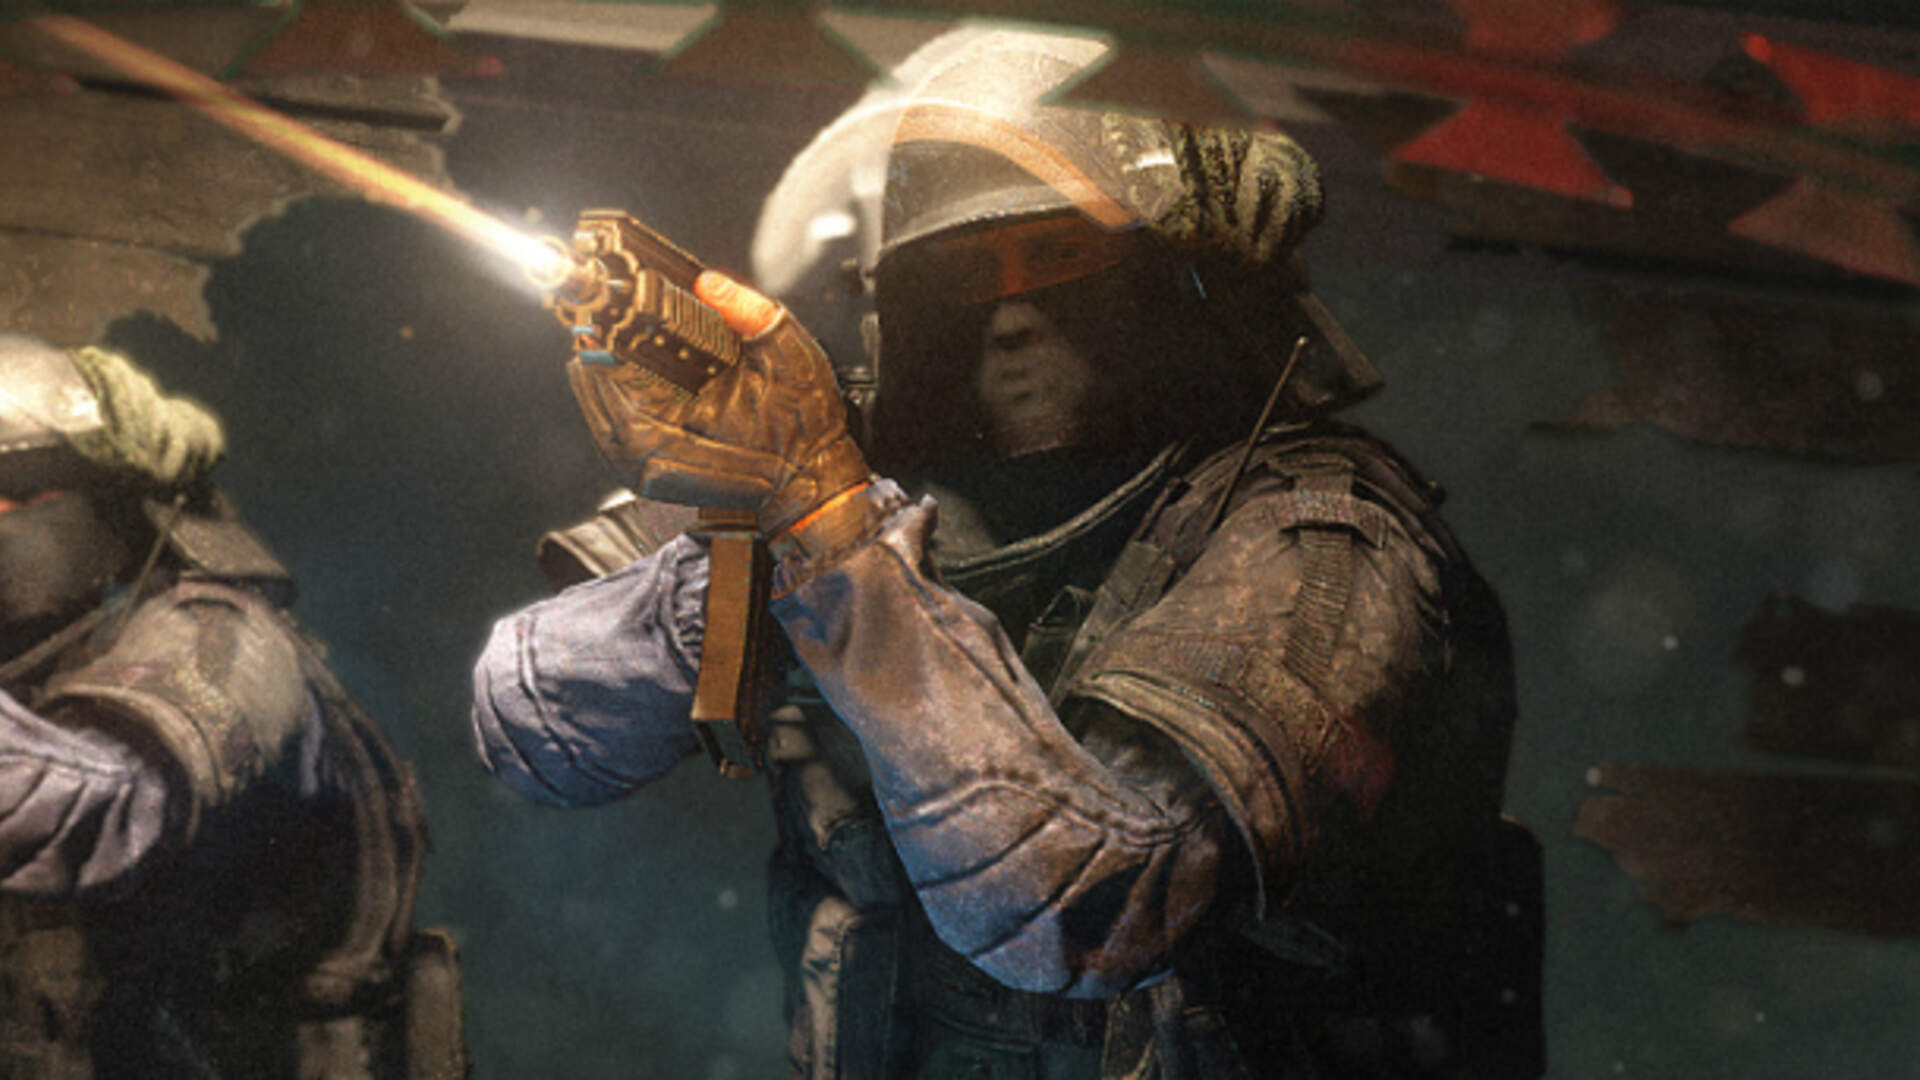 Rainbow Six Siege Year 3 Content Announced, Teases Co-Operative Zombies Mode